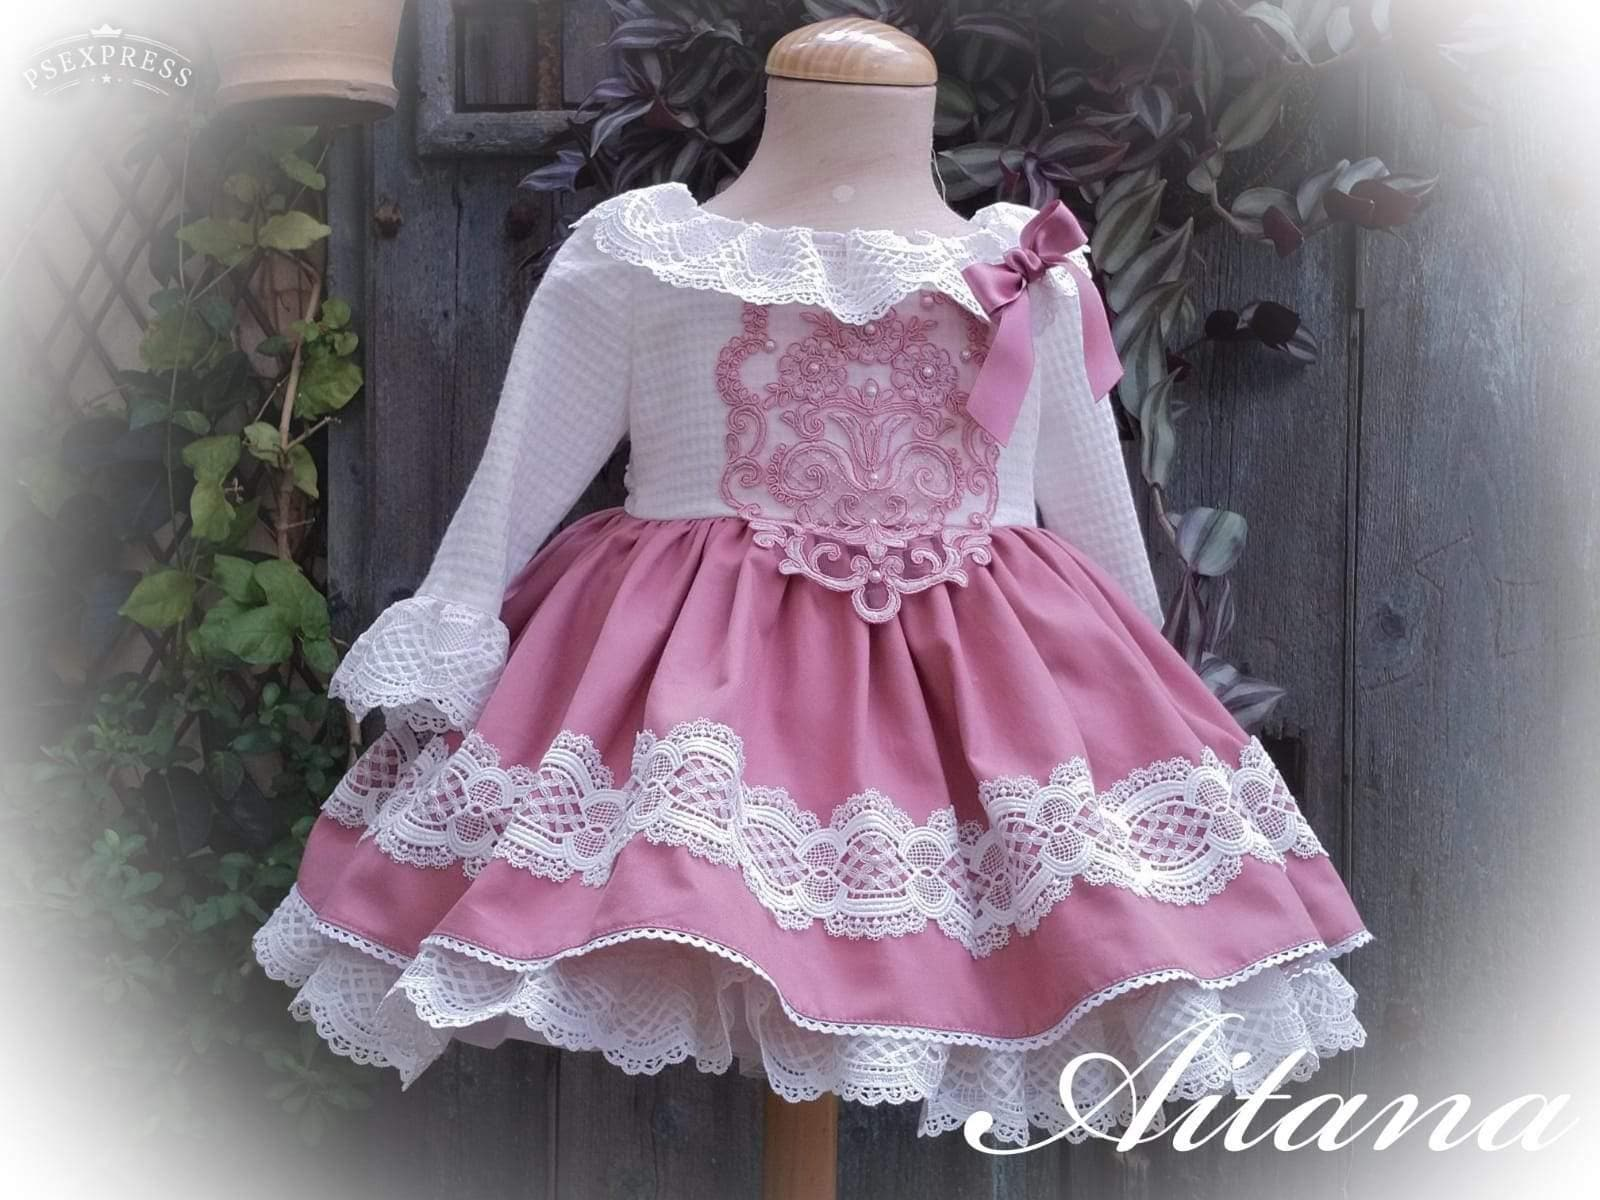 Exclusive Girls Dresses Exclusive Aitana Handmade to Order Dress